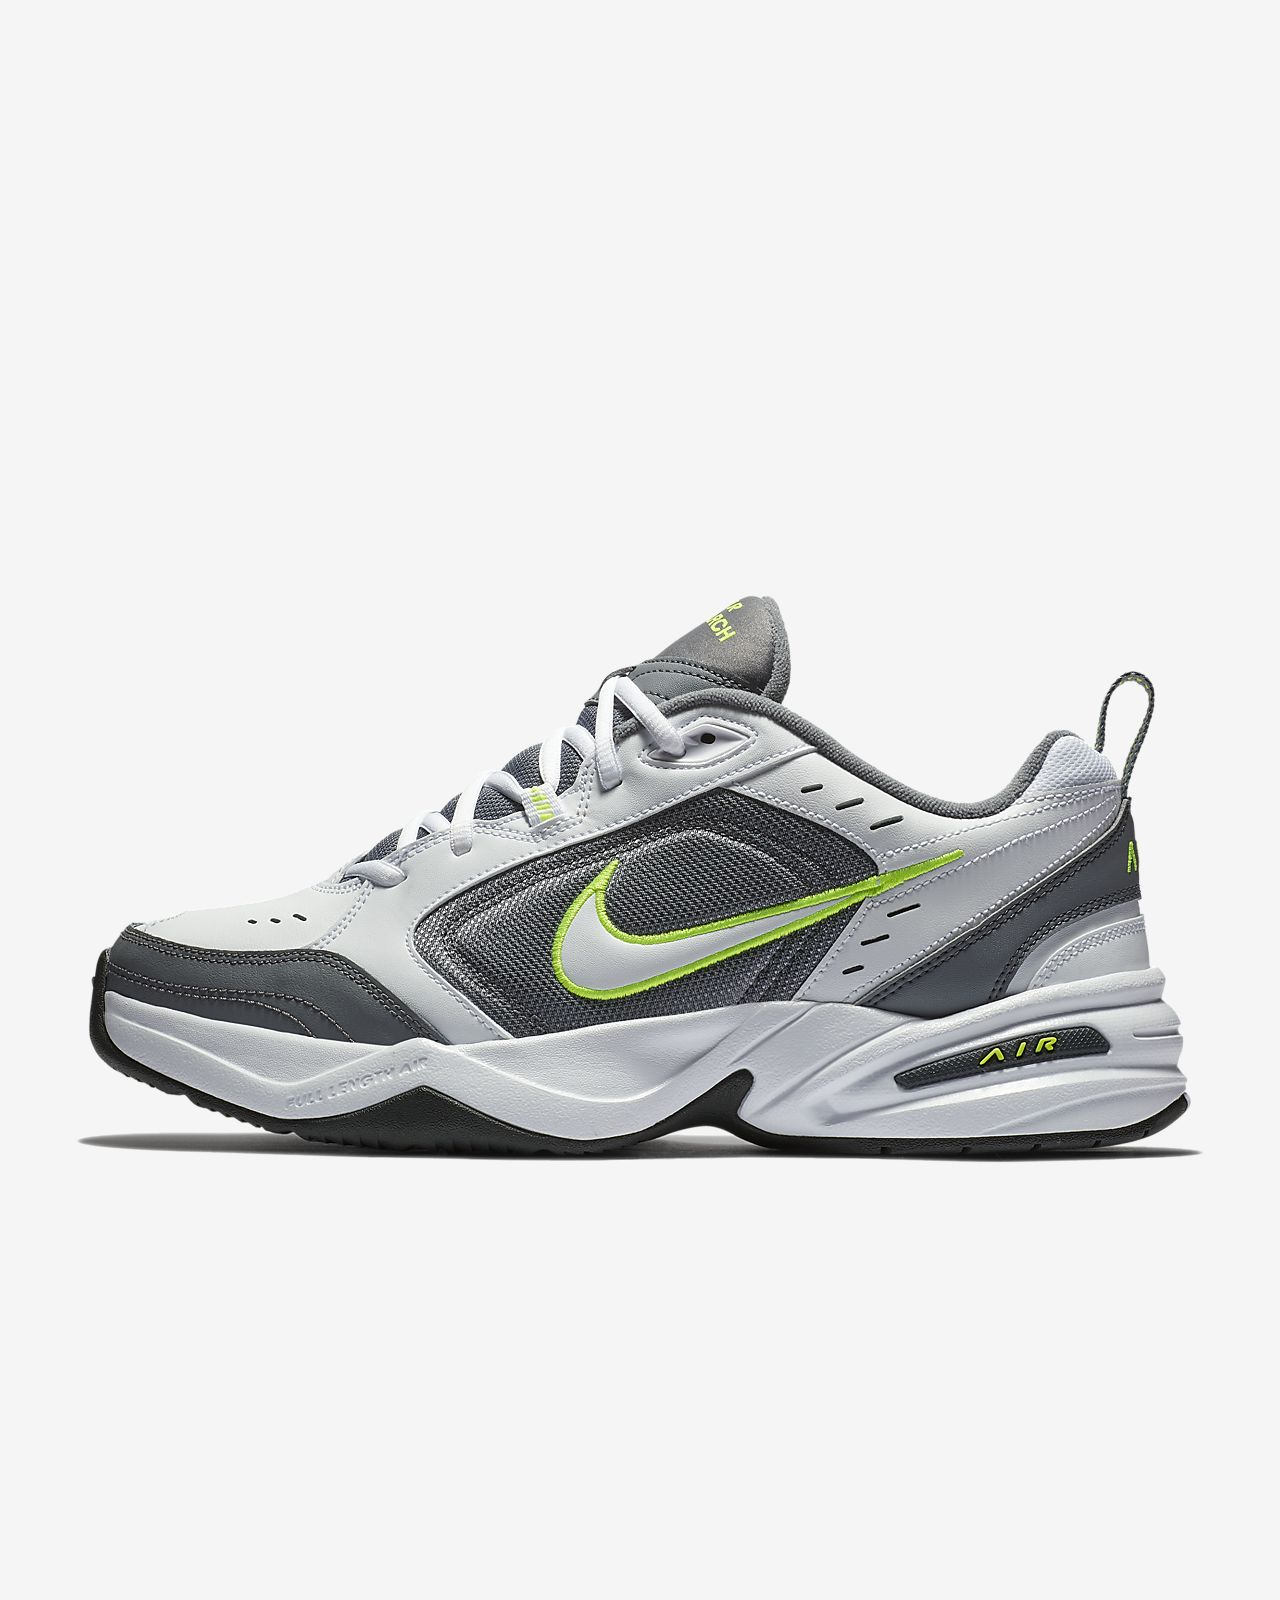 dbf568eaa56f1 Nike Air Monarch IV Lifestyle Gym Shoe. Nike.com